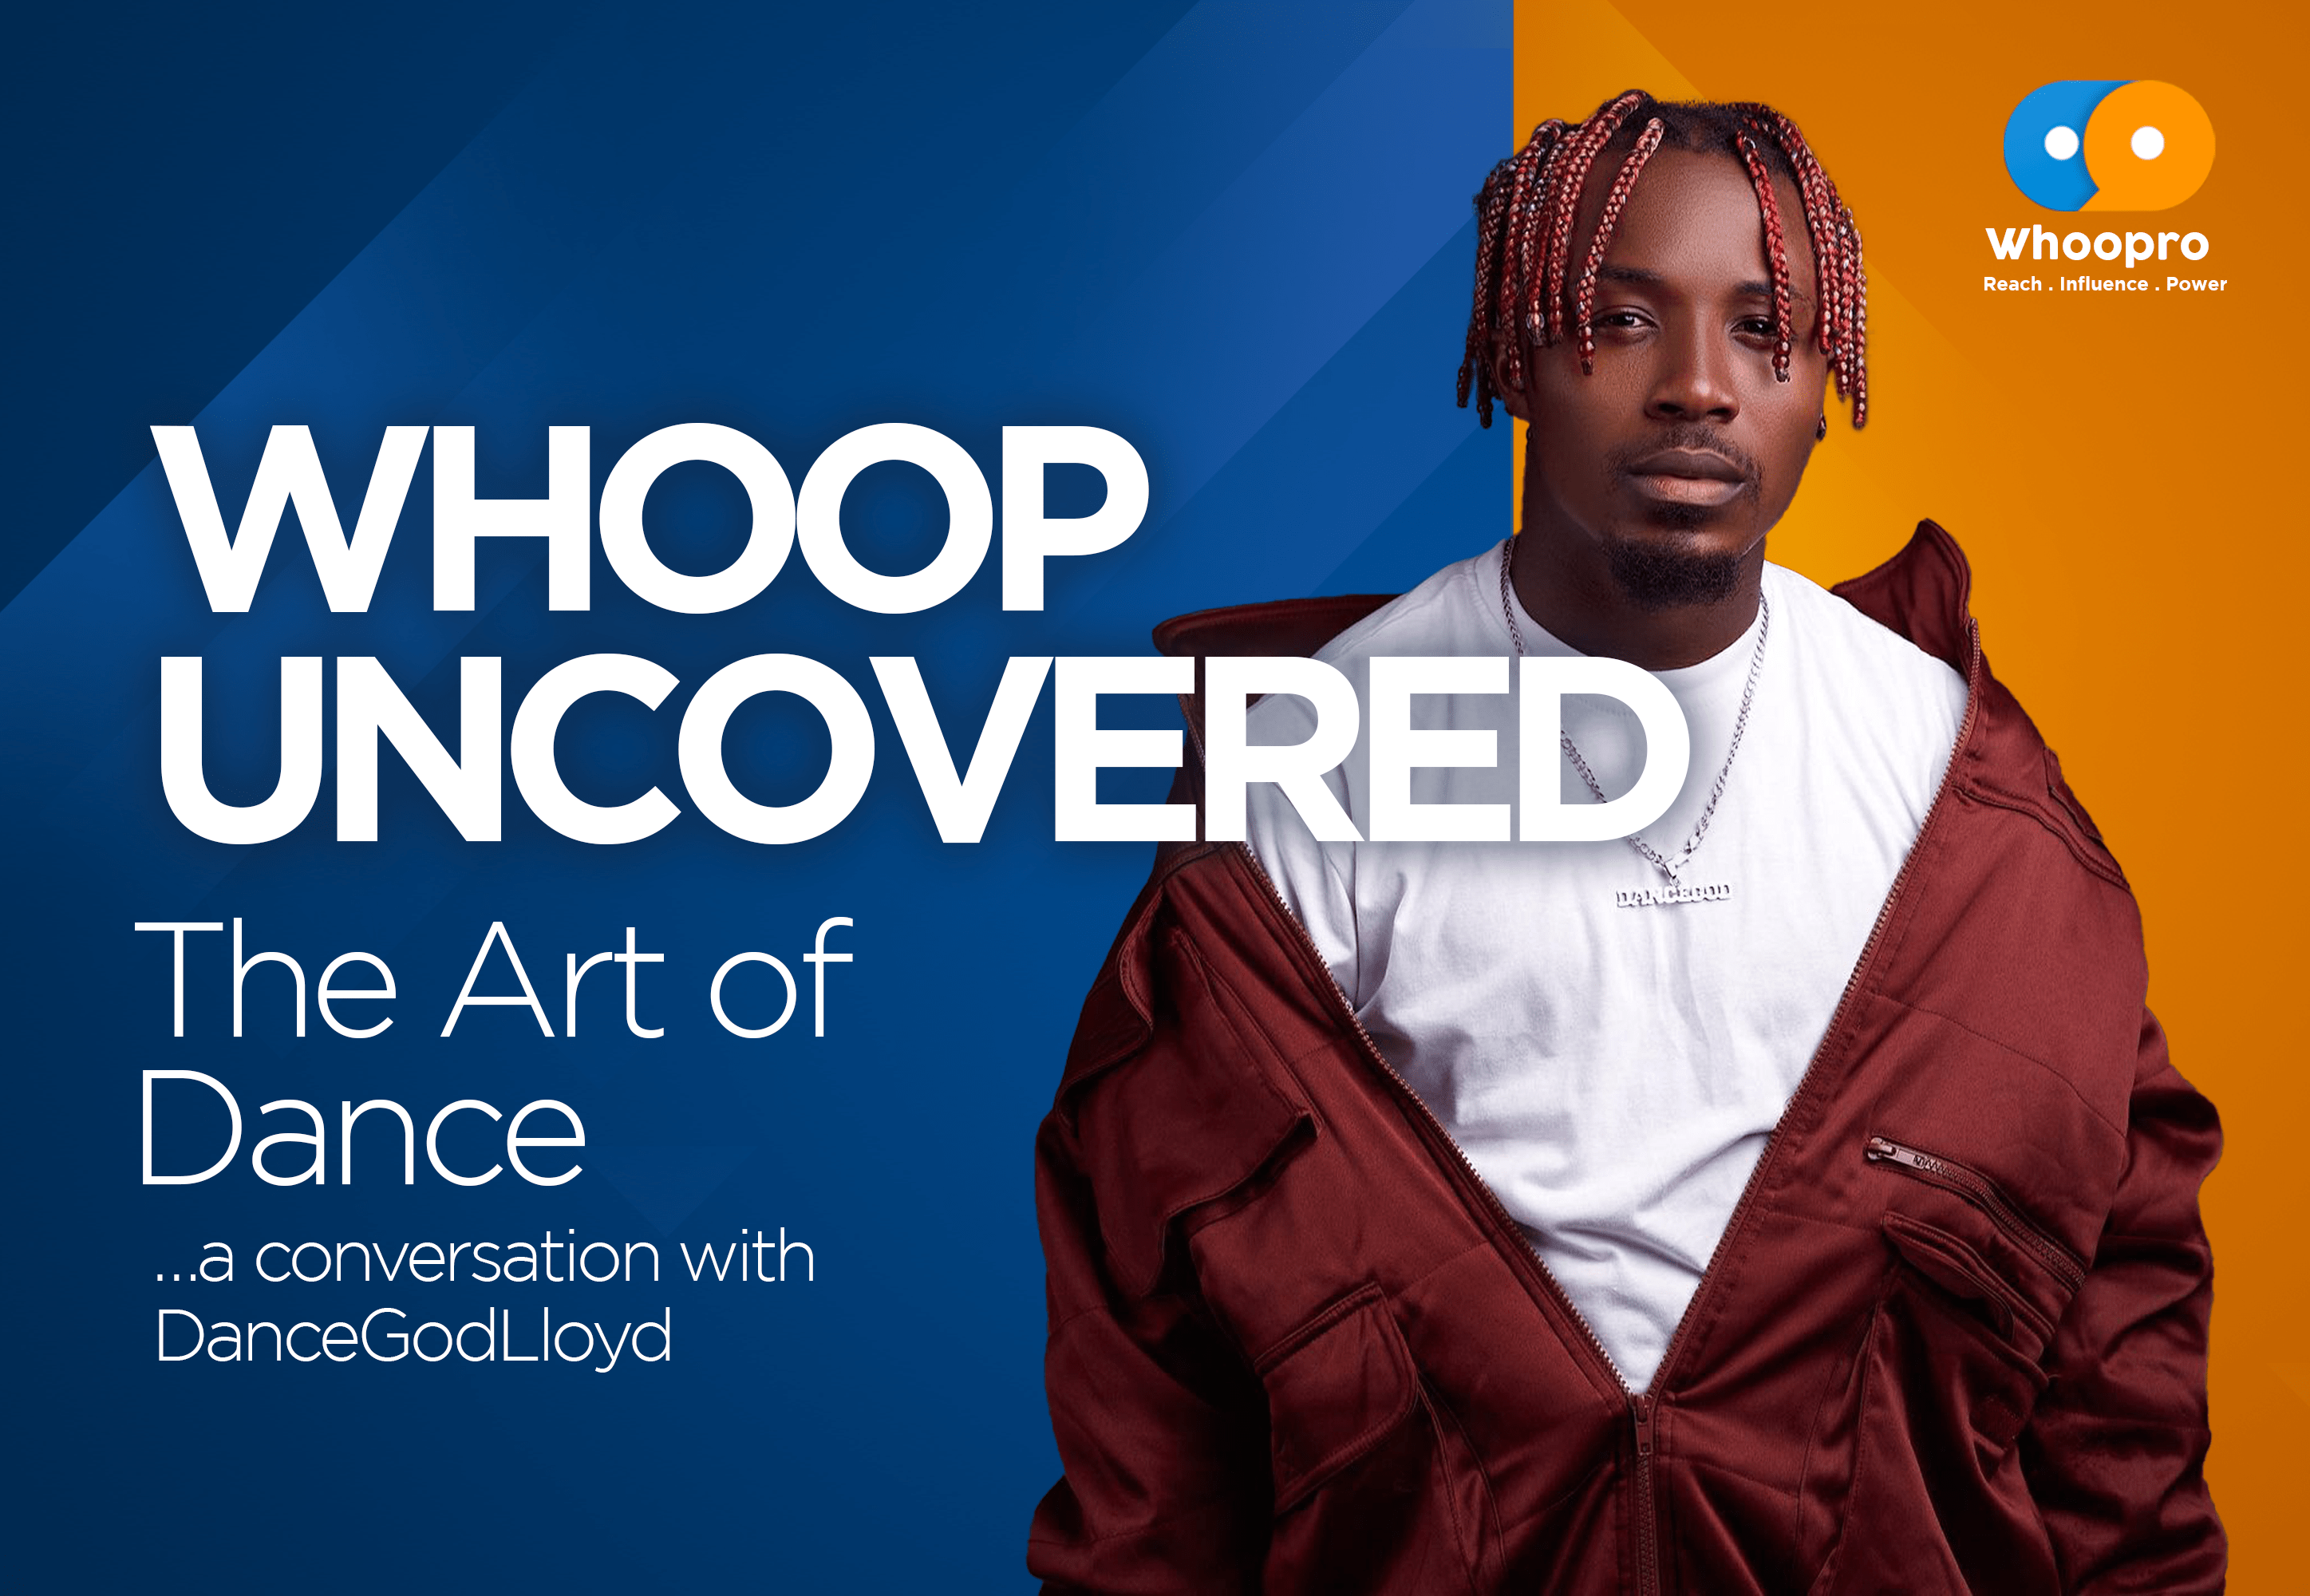 WhoopUncovered: The Art of Dancing – DanceGodLlyod